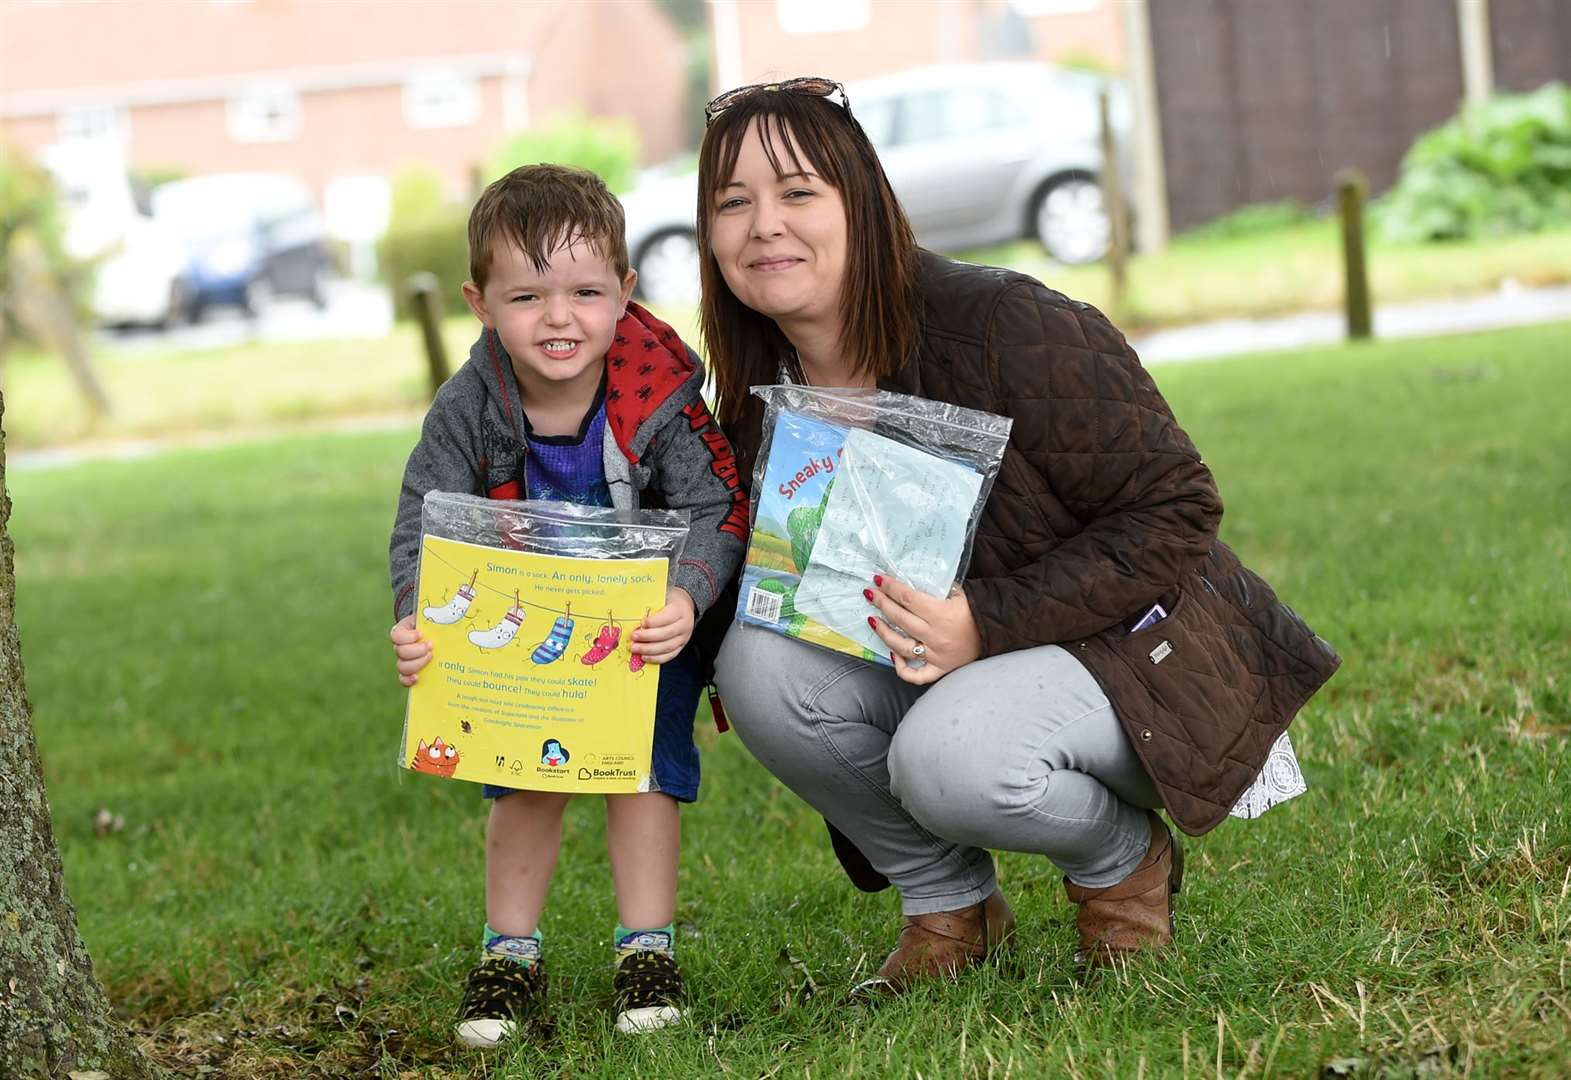 Mum launches treasure hunt to inspire book fans